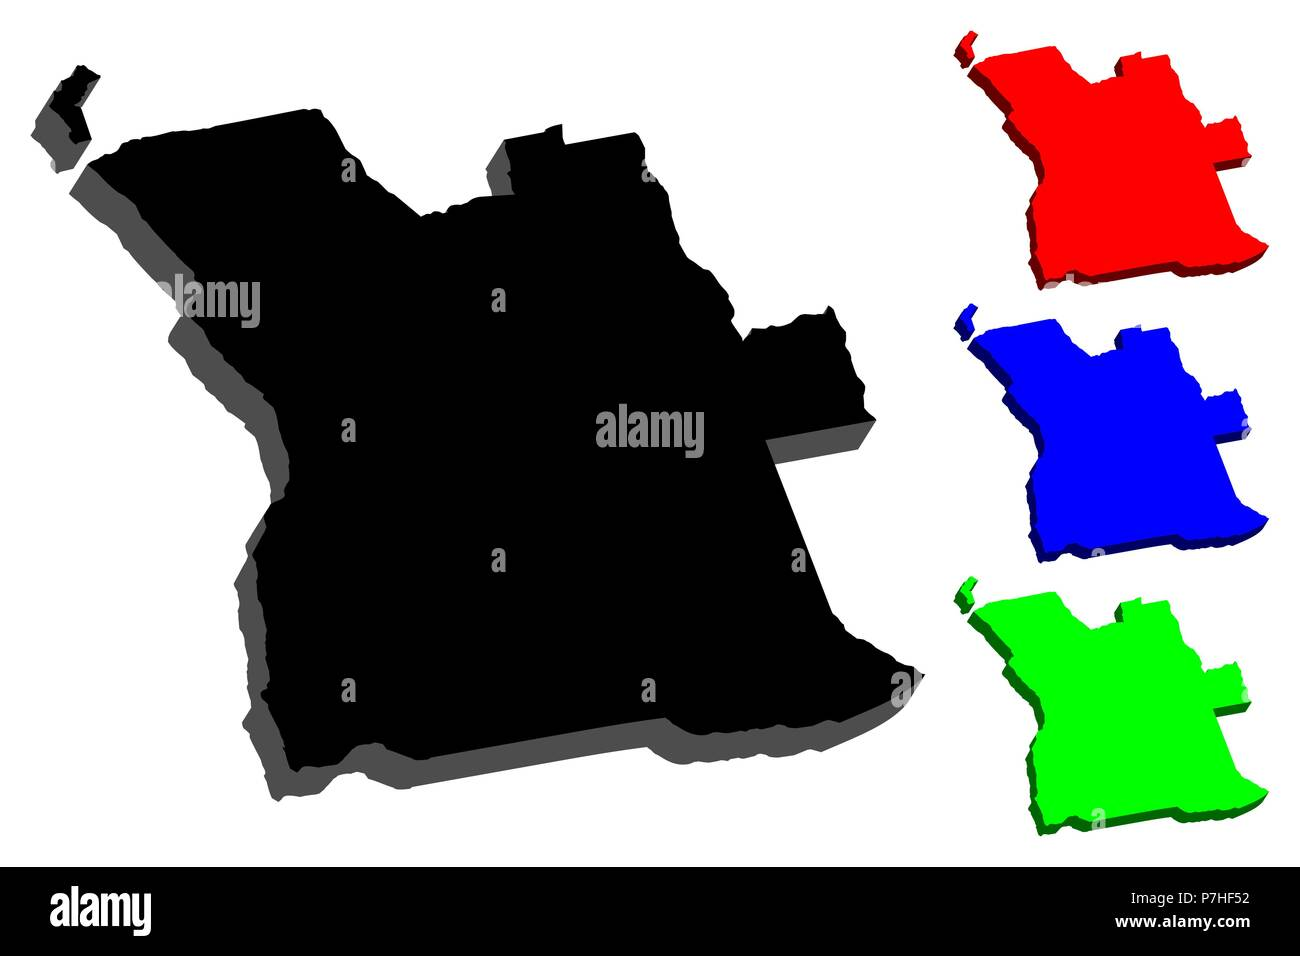 3D map of Angola (Republic of Angola) - black, red, blue and green - vector illustration - Stock Image